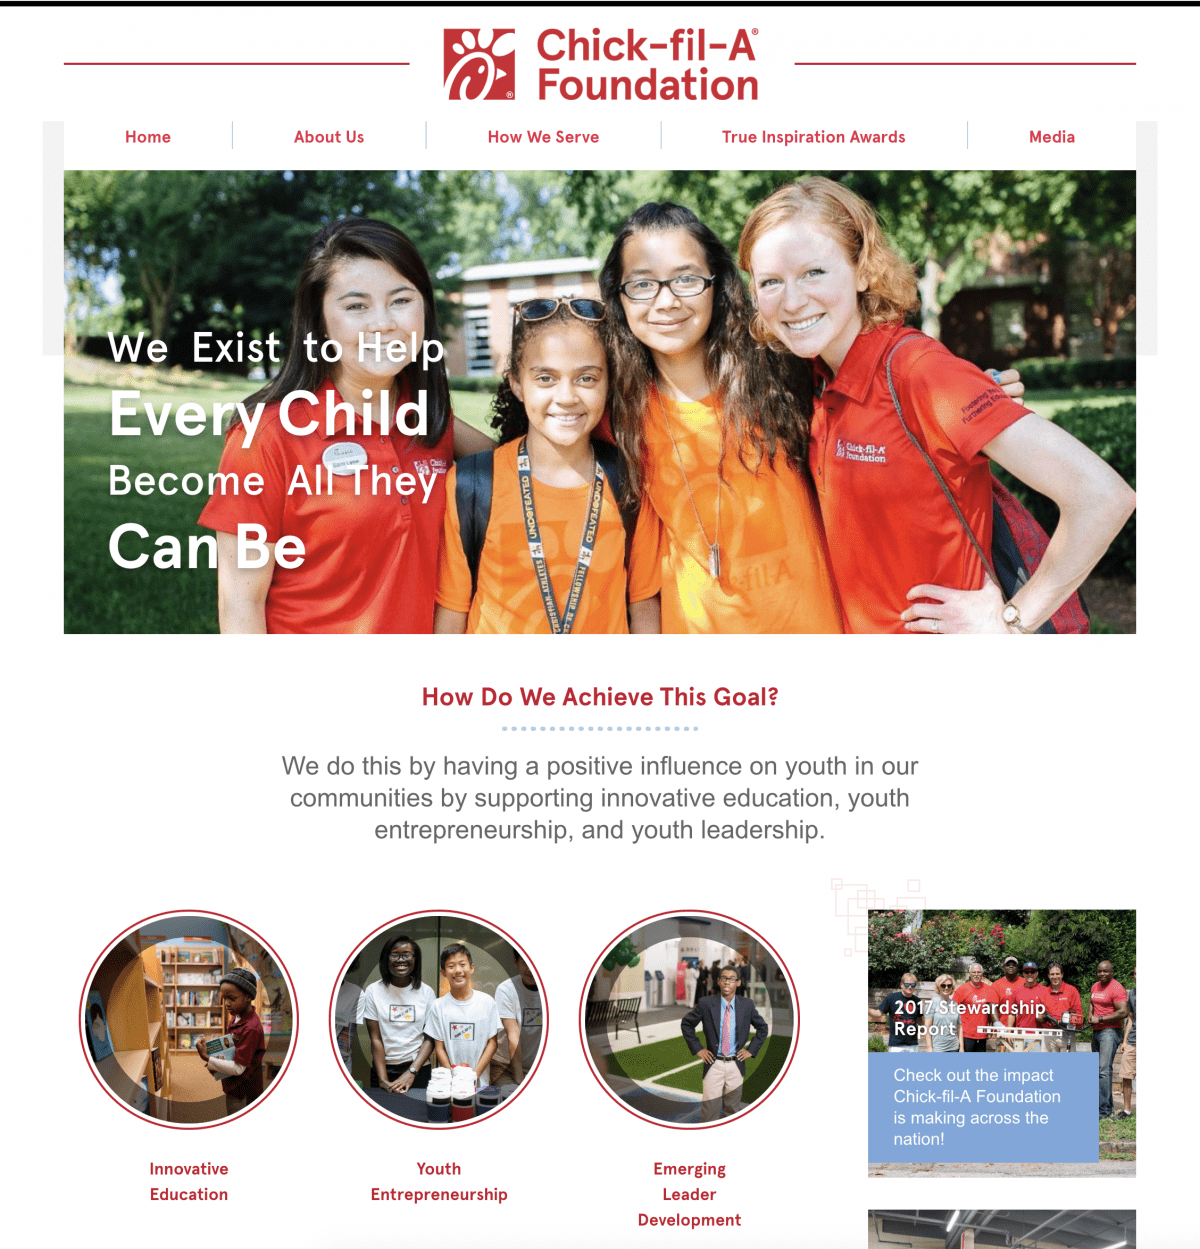 Image of website for Chick-Fil-A Foundation